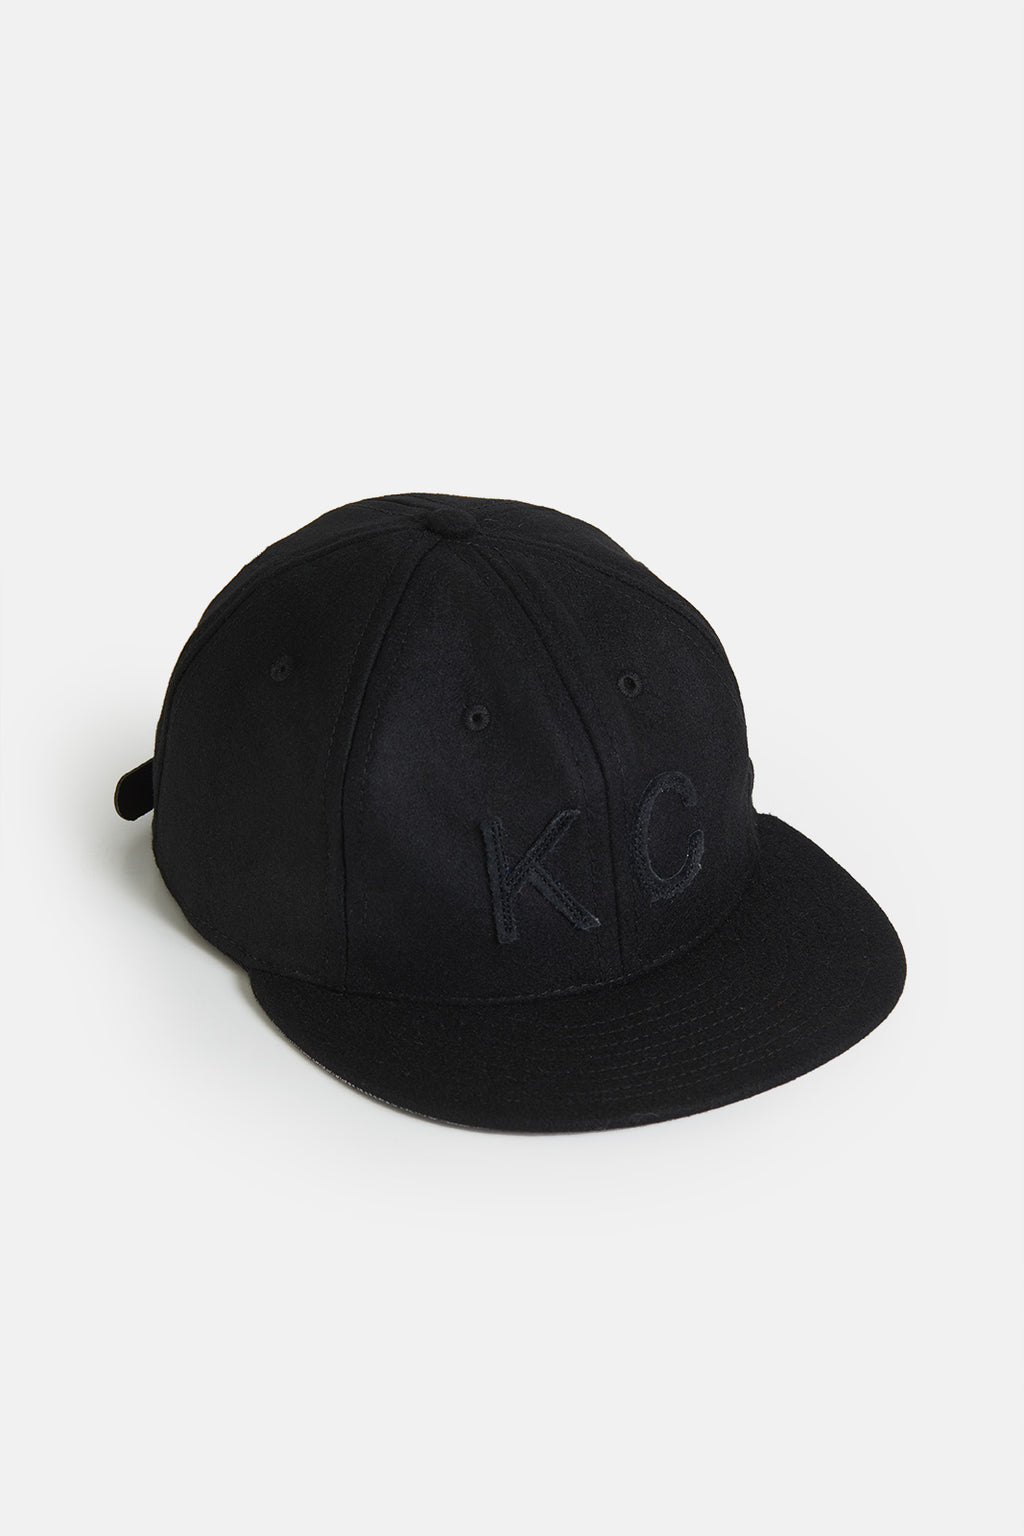 The KC Hat Strapback in Black/Black